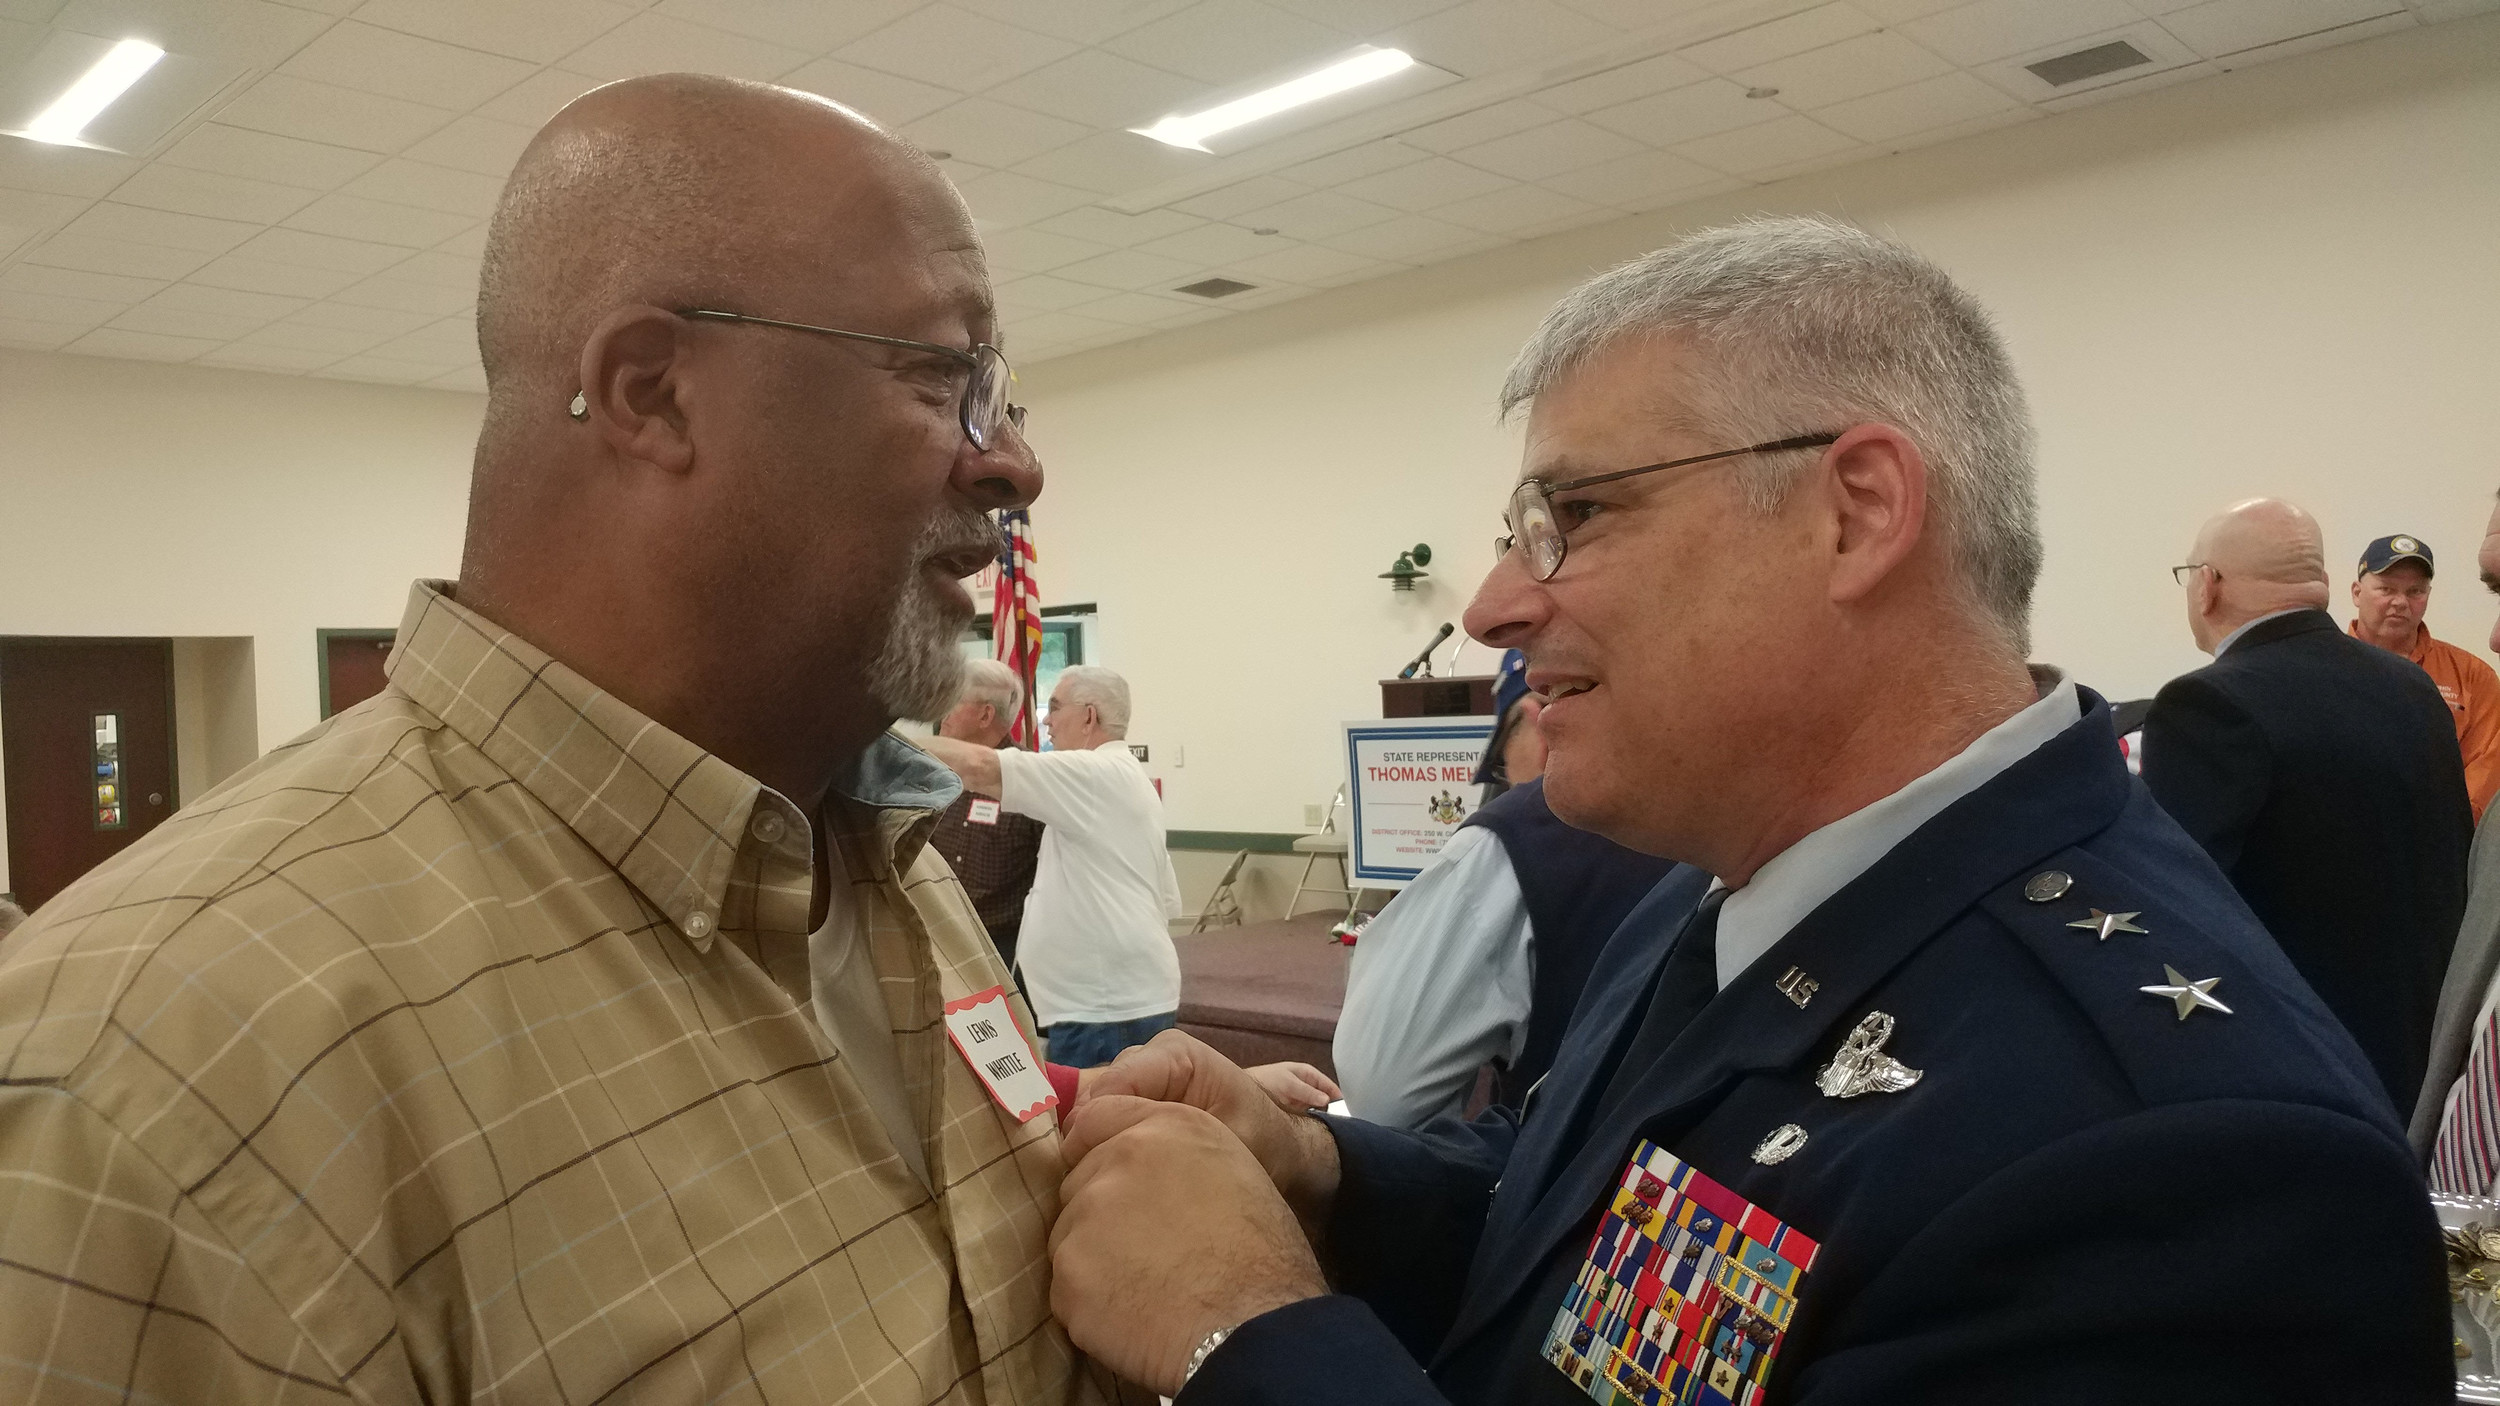 Major General Anthony Carrelli chats with Lewis Whittle as he presents Whittle with his Vietnam Veteran lapel pin during the 2017 Veterans breakfast and recognition ceremony, Friday, Nov. 3 at the Lower Swatara Fire Department.